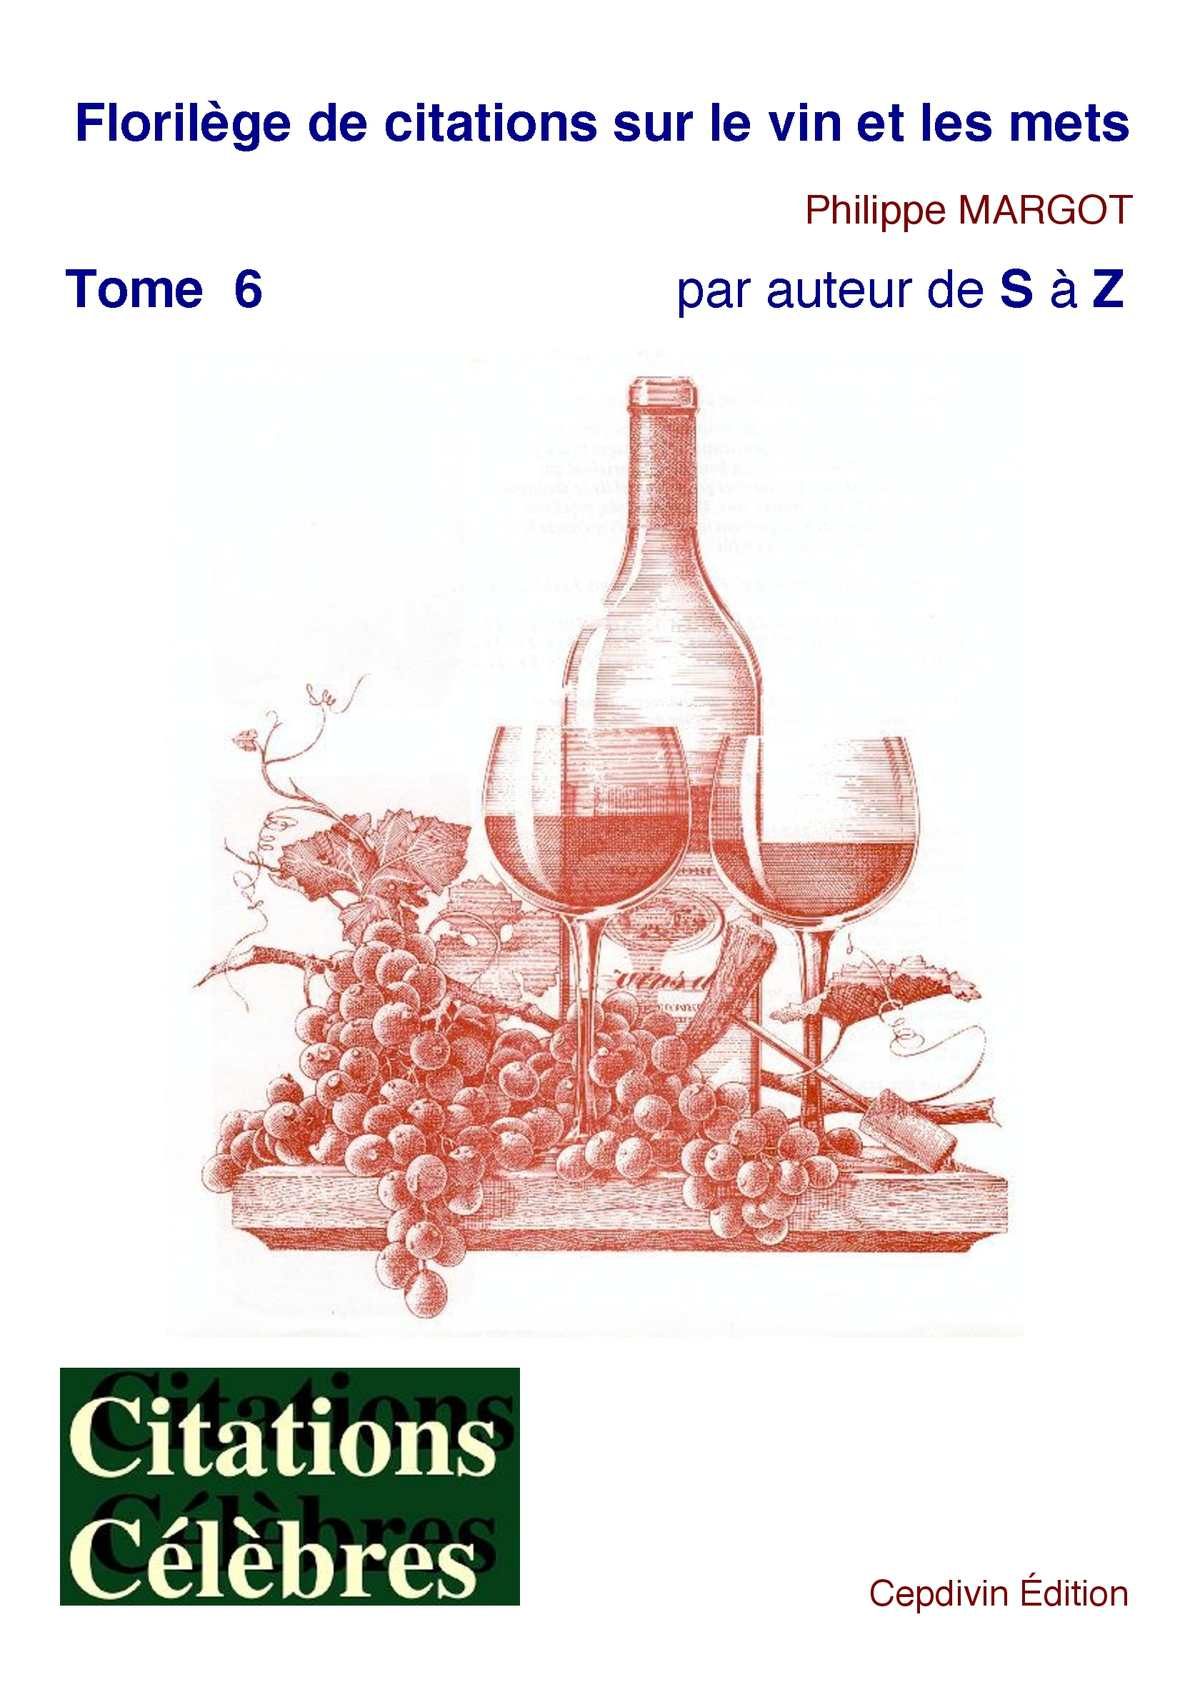 Other Breweriana Collection Here Publicite Advertising 054 1963 Les Tricots Bel étourdissants